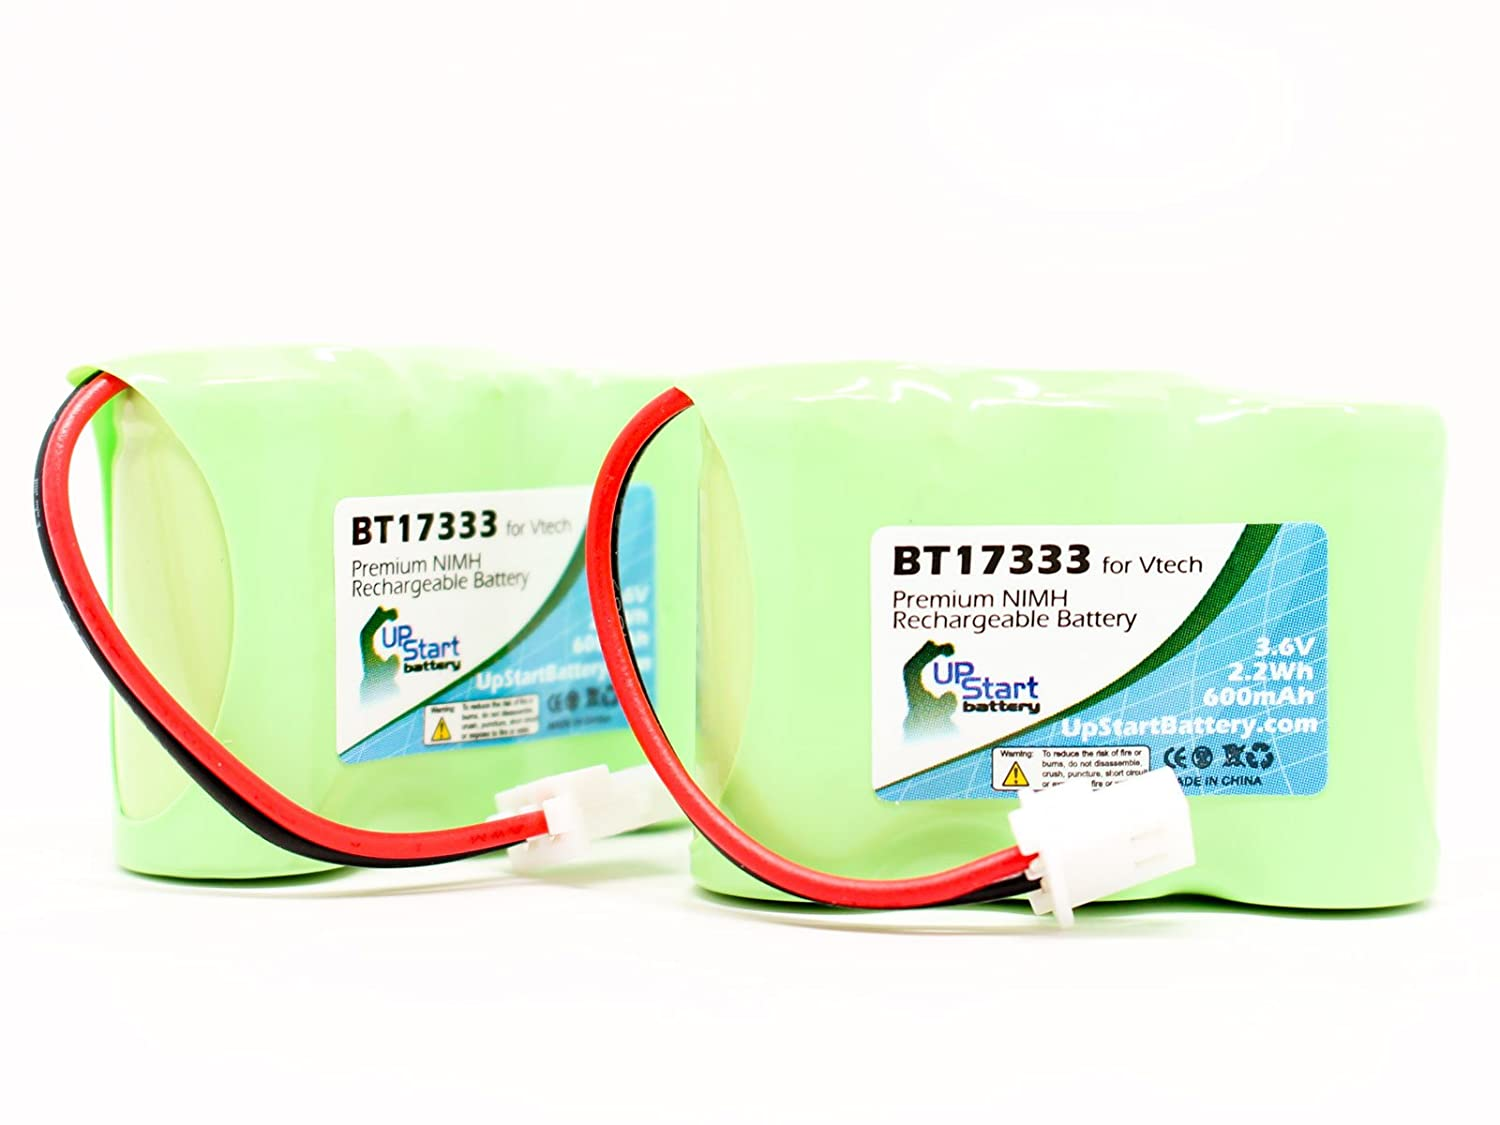 2x Pack - Sanyo 3N270AA-MRX-R Battery - Replacement for Sanyo Cordless Phone Battery (600mAh, 3.6V, NI-MH) Upstart Battery BT-17333-2BATT-DL42